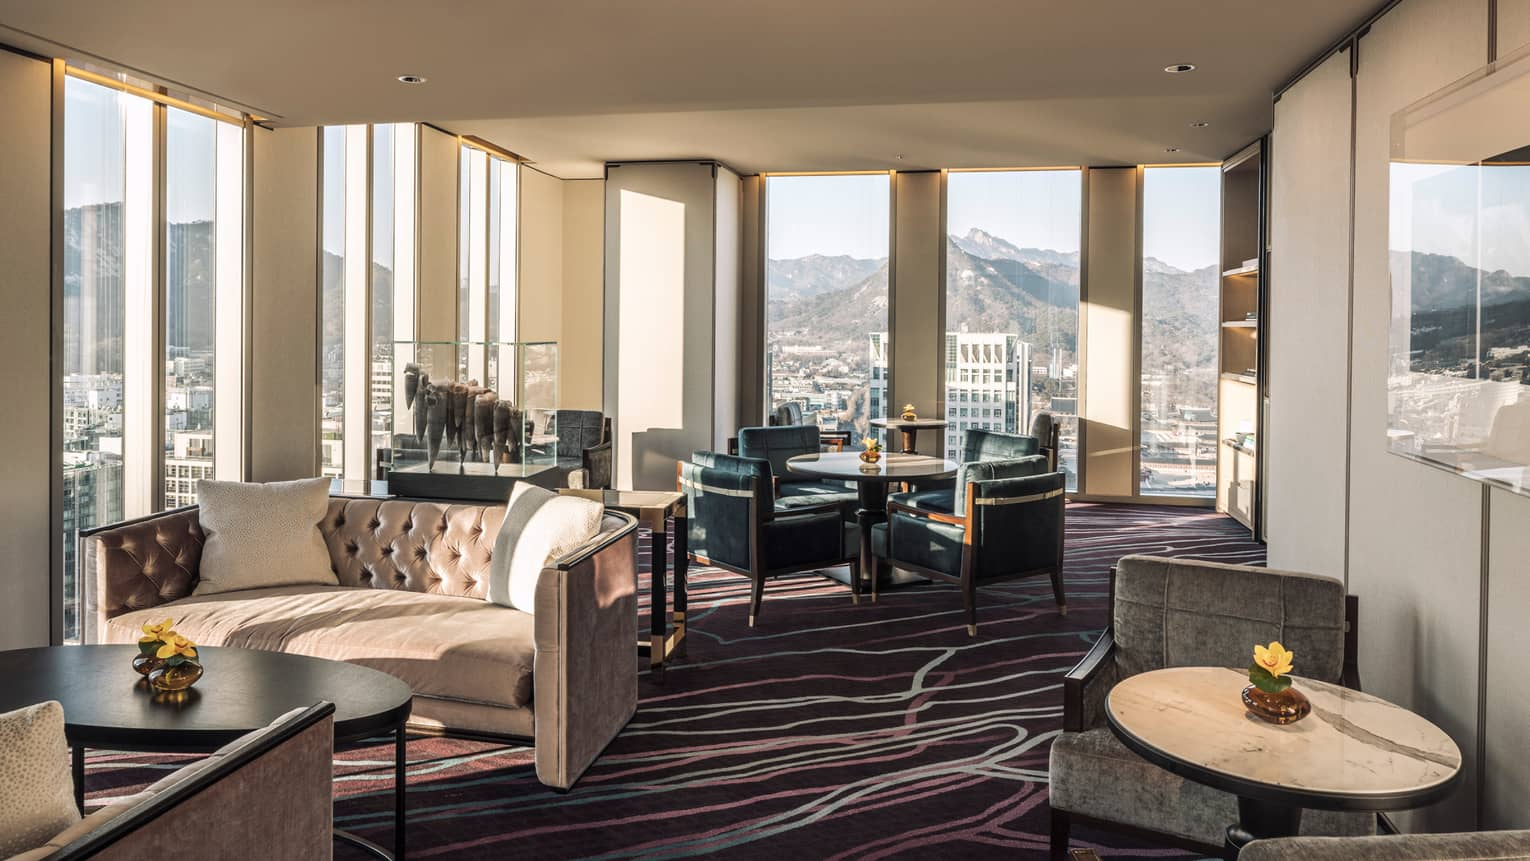 Lounge with tufted velvet sofas, cocktail tables and armchairs, floor-to-ceiling windows